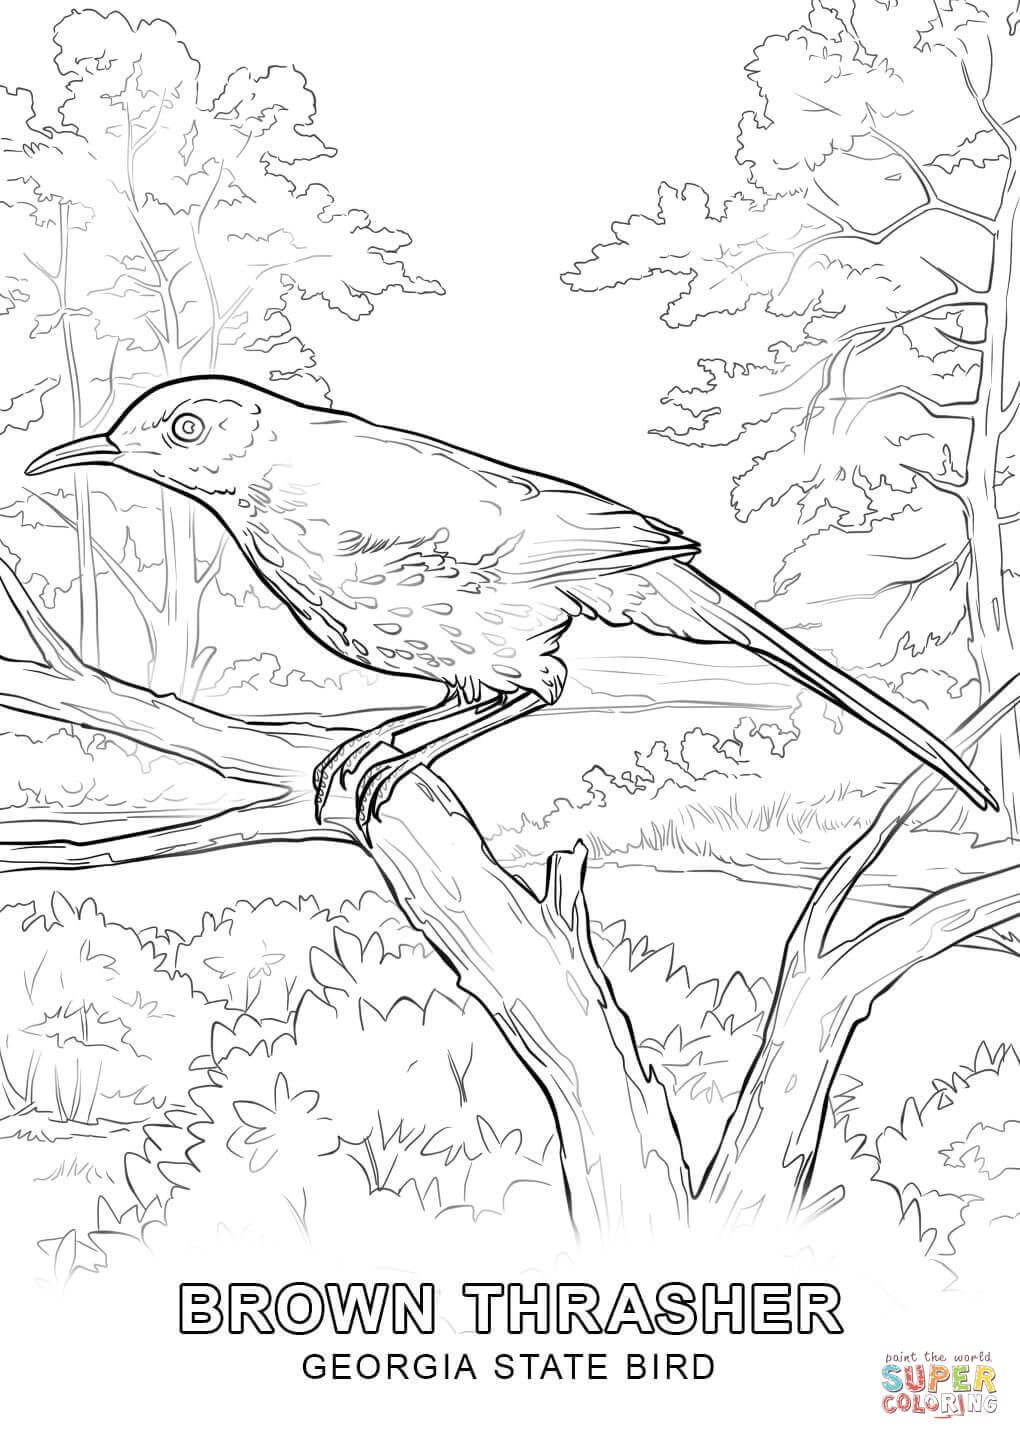 Click The Georgia State Bird Coloring Pages To View Printable Version Or Color It Online Compati Bird Coloring Pages Flag Coloring Pages Flower Coloring Pages